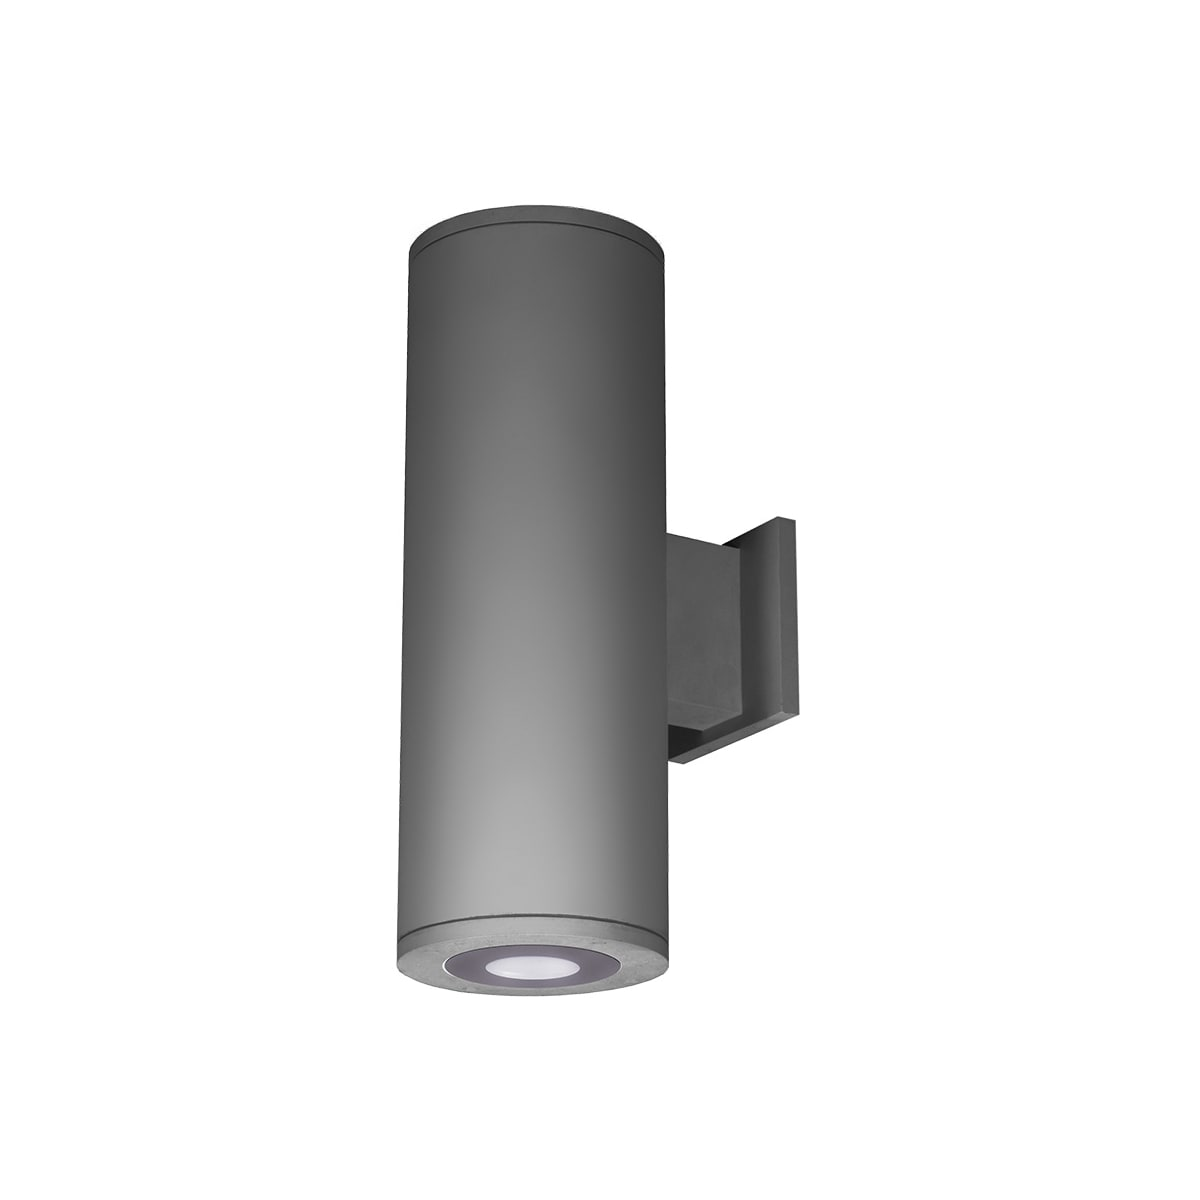 Wac Lighting Ds Wd05 U30b Gh Graphite 3000k Tube Architectural 13 Tall Led Double Sided Outdoor Wall Sconce With Ultra Narrow Beam And Towards The Wall Light Direction Lightingshowplace Com